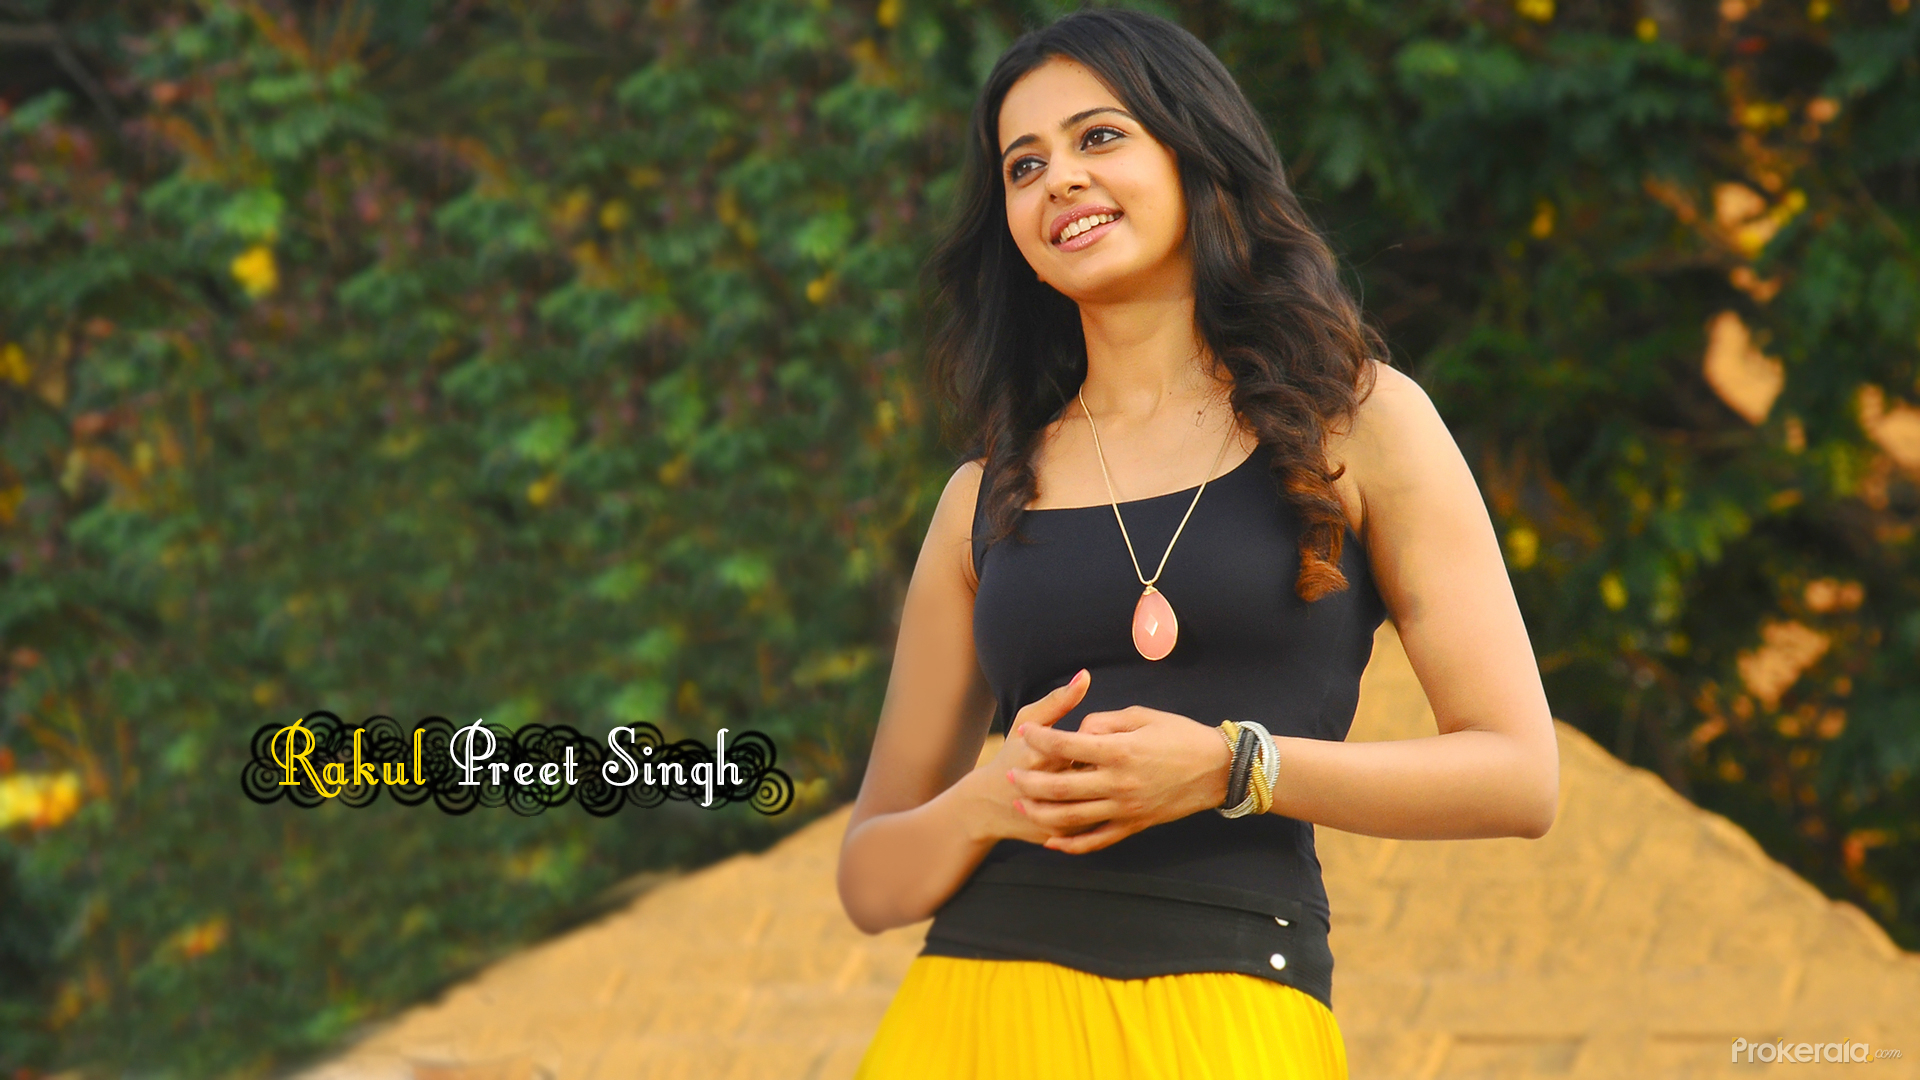 rakul preet singh hd wallpaper